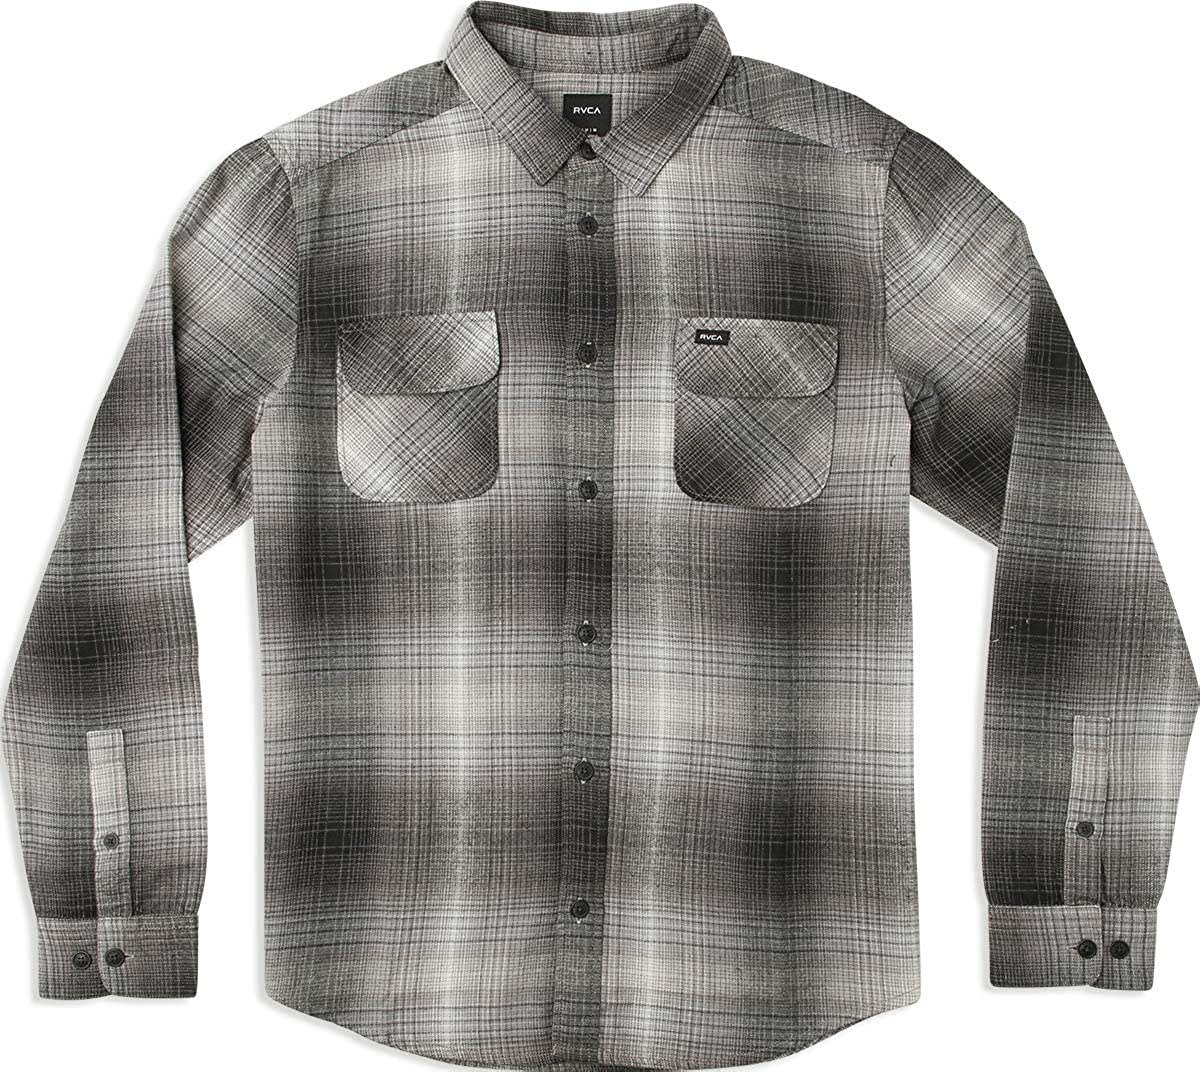 RVCA Men's Muir Plaid Long Sleeve Flannel: Clothing